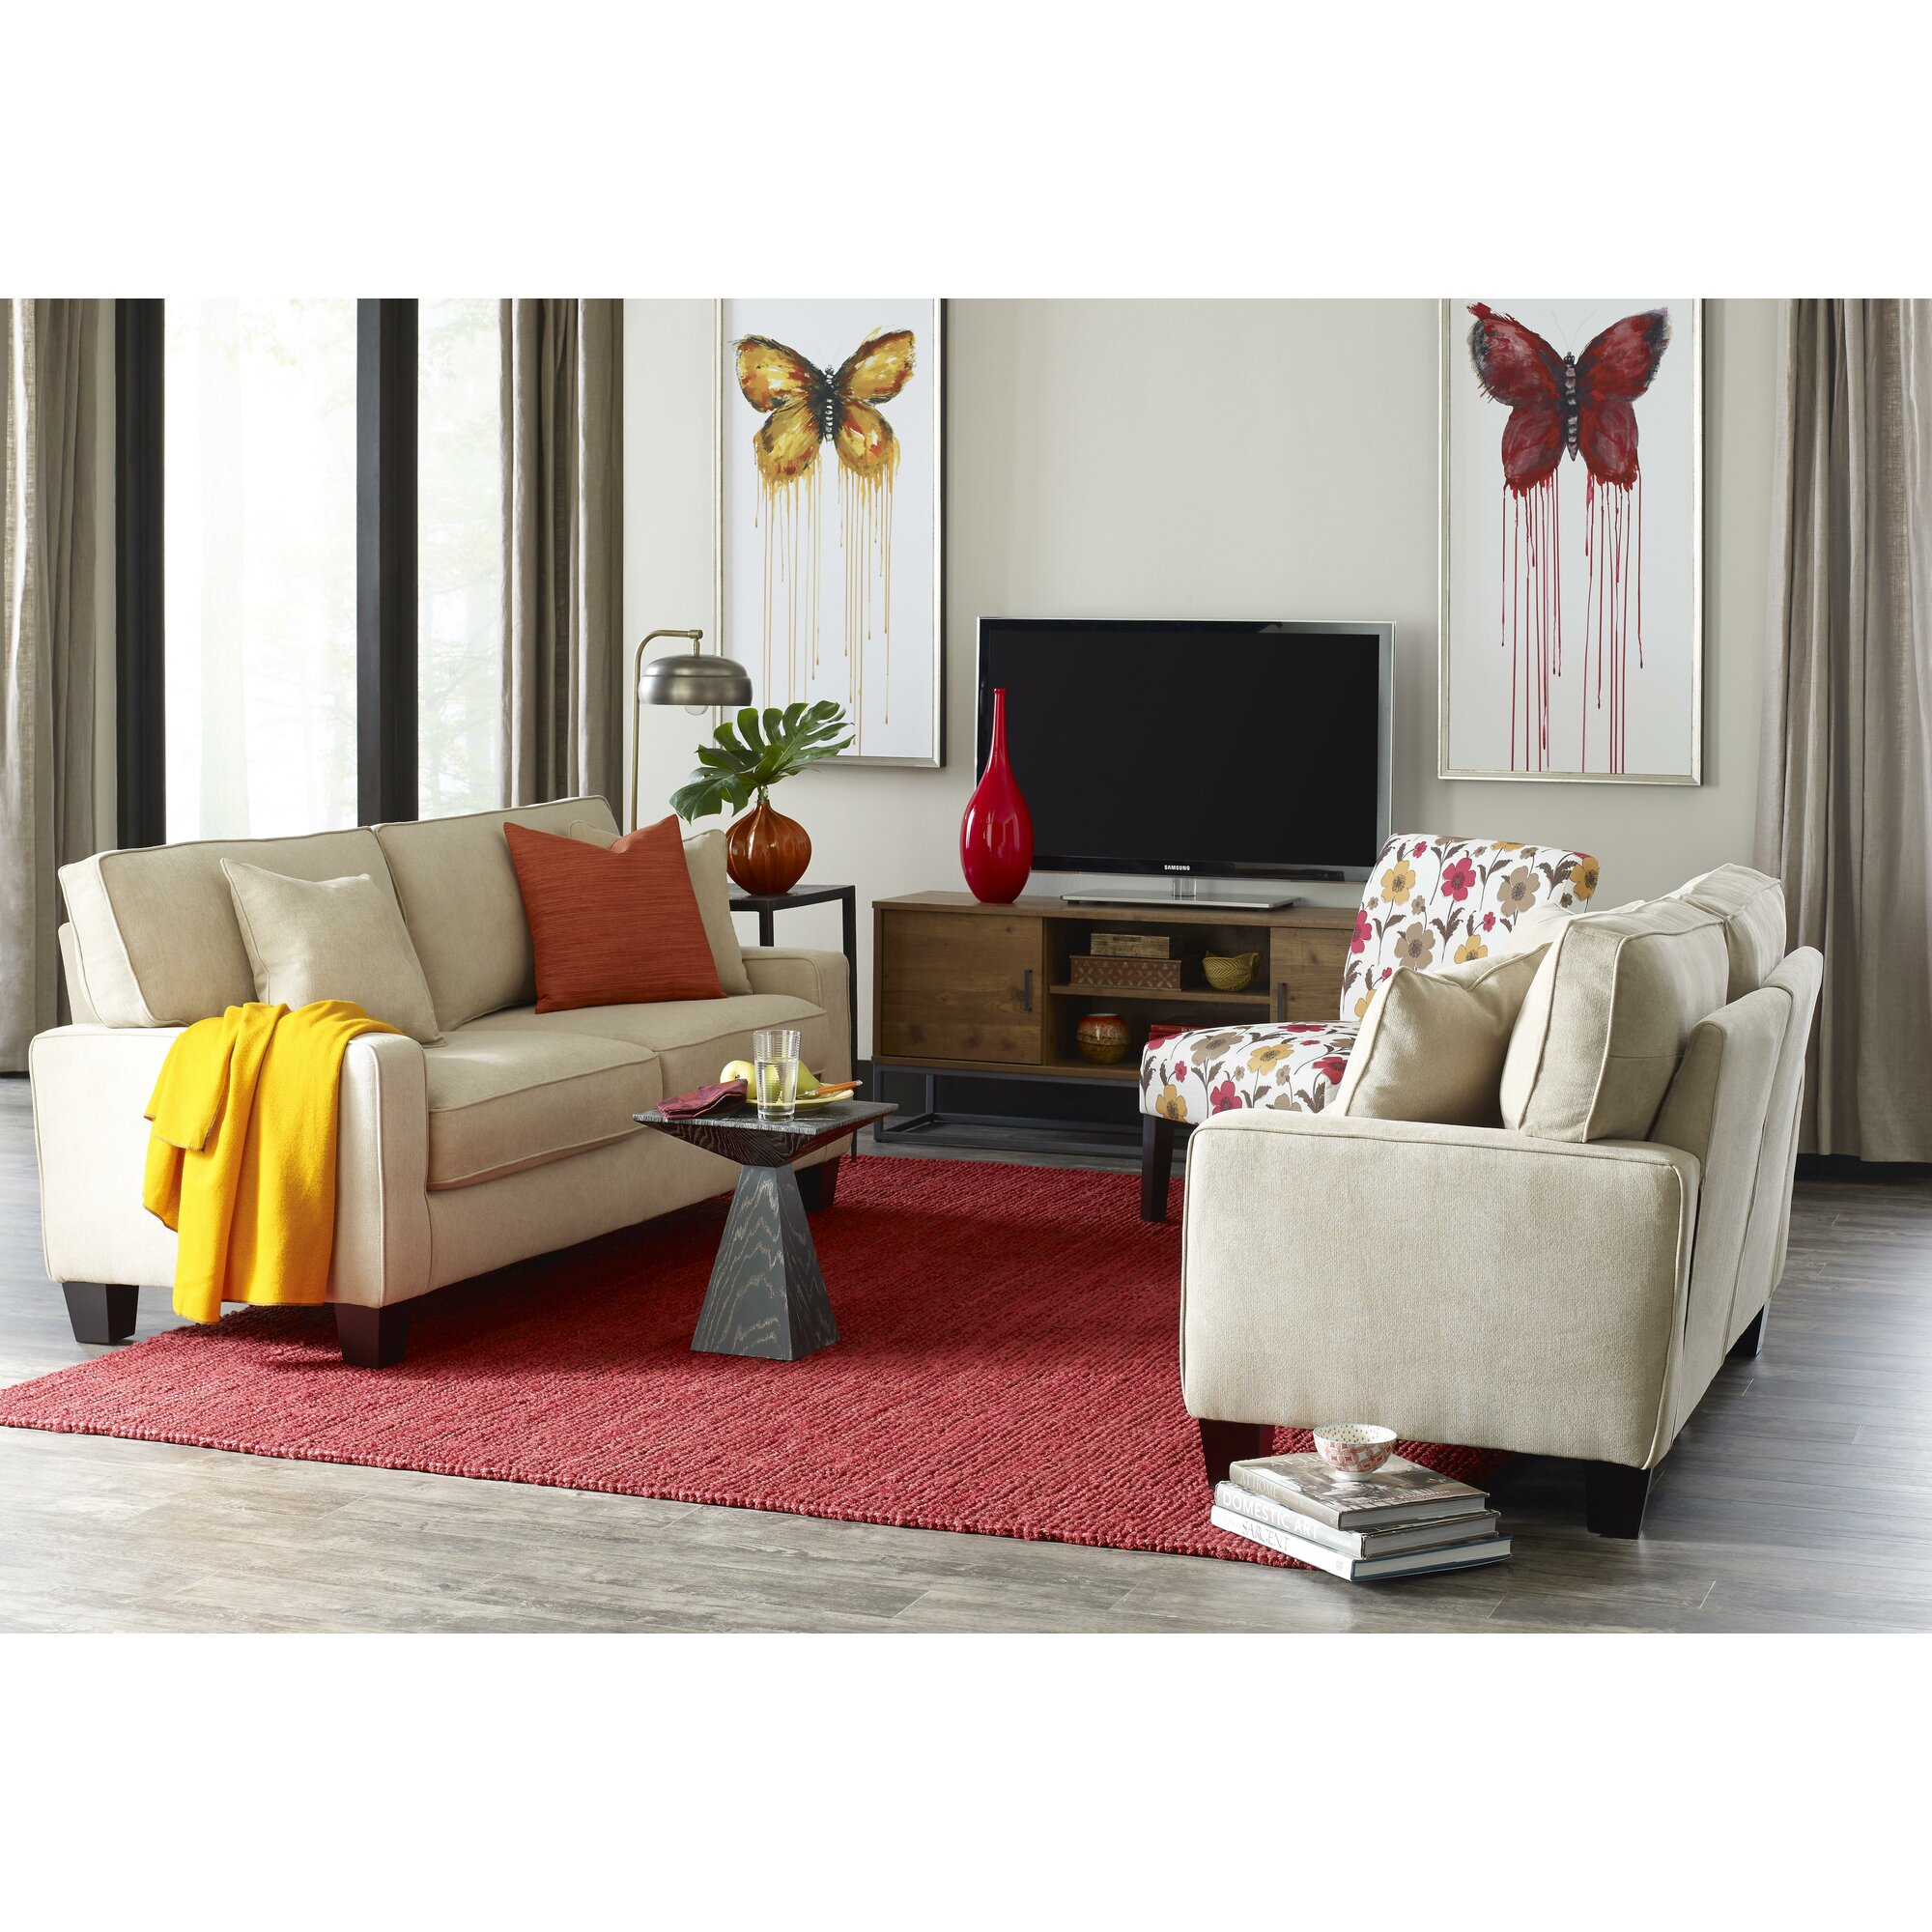 Serta at home palisades living room collection Serta upholstery living room collection